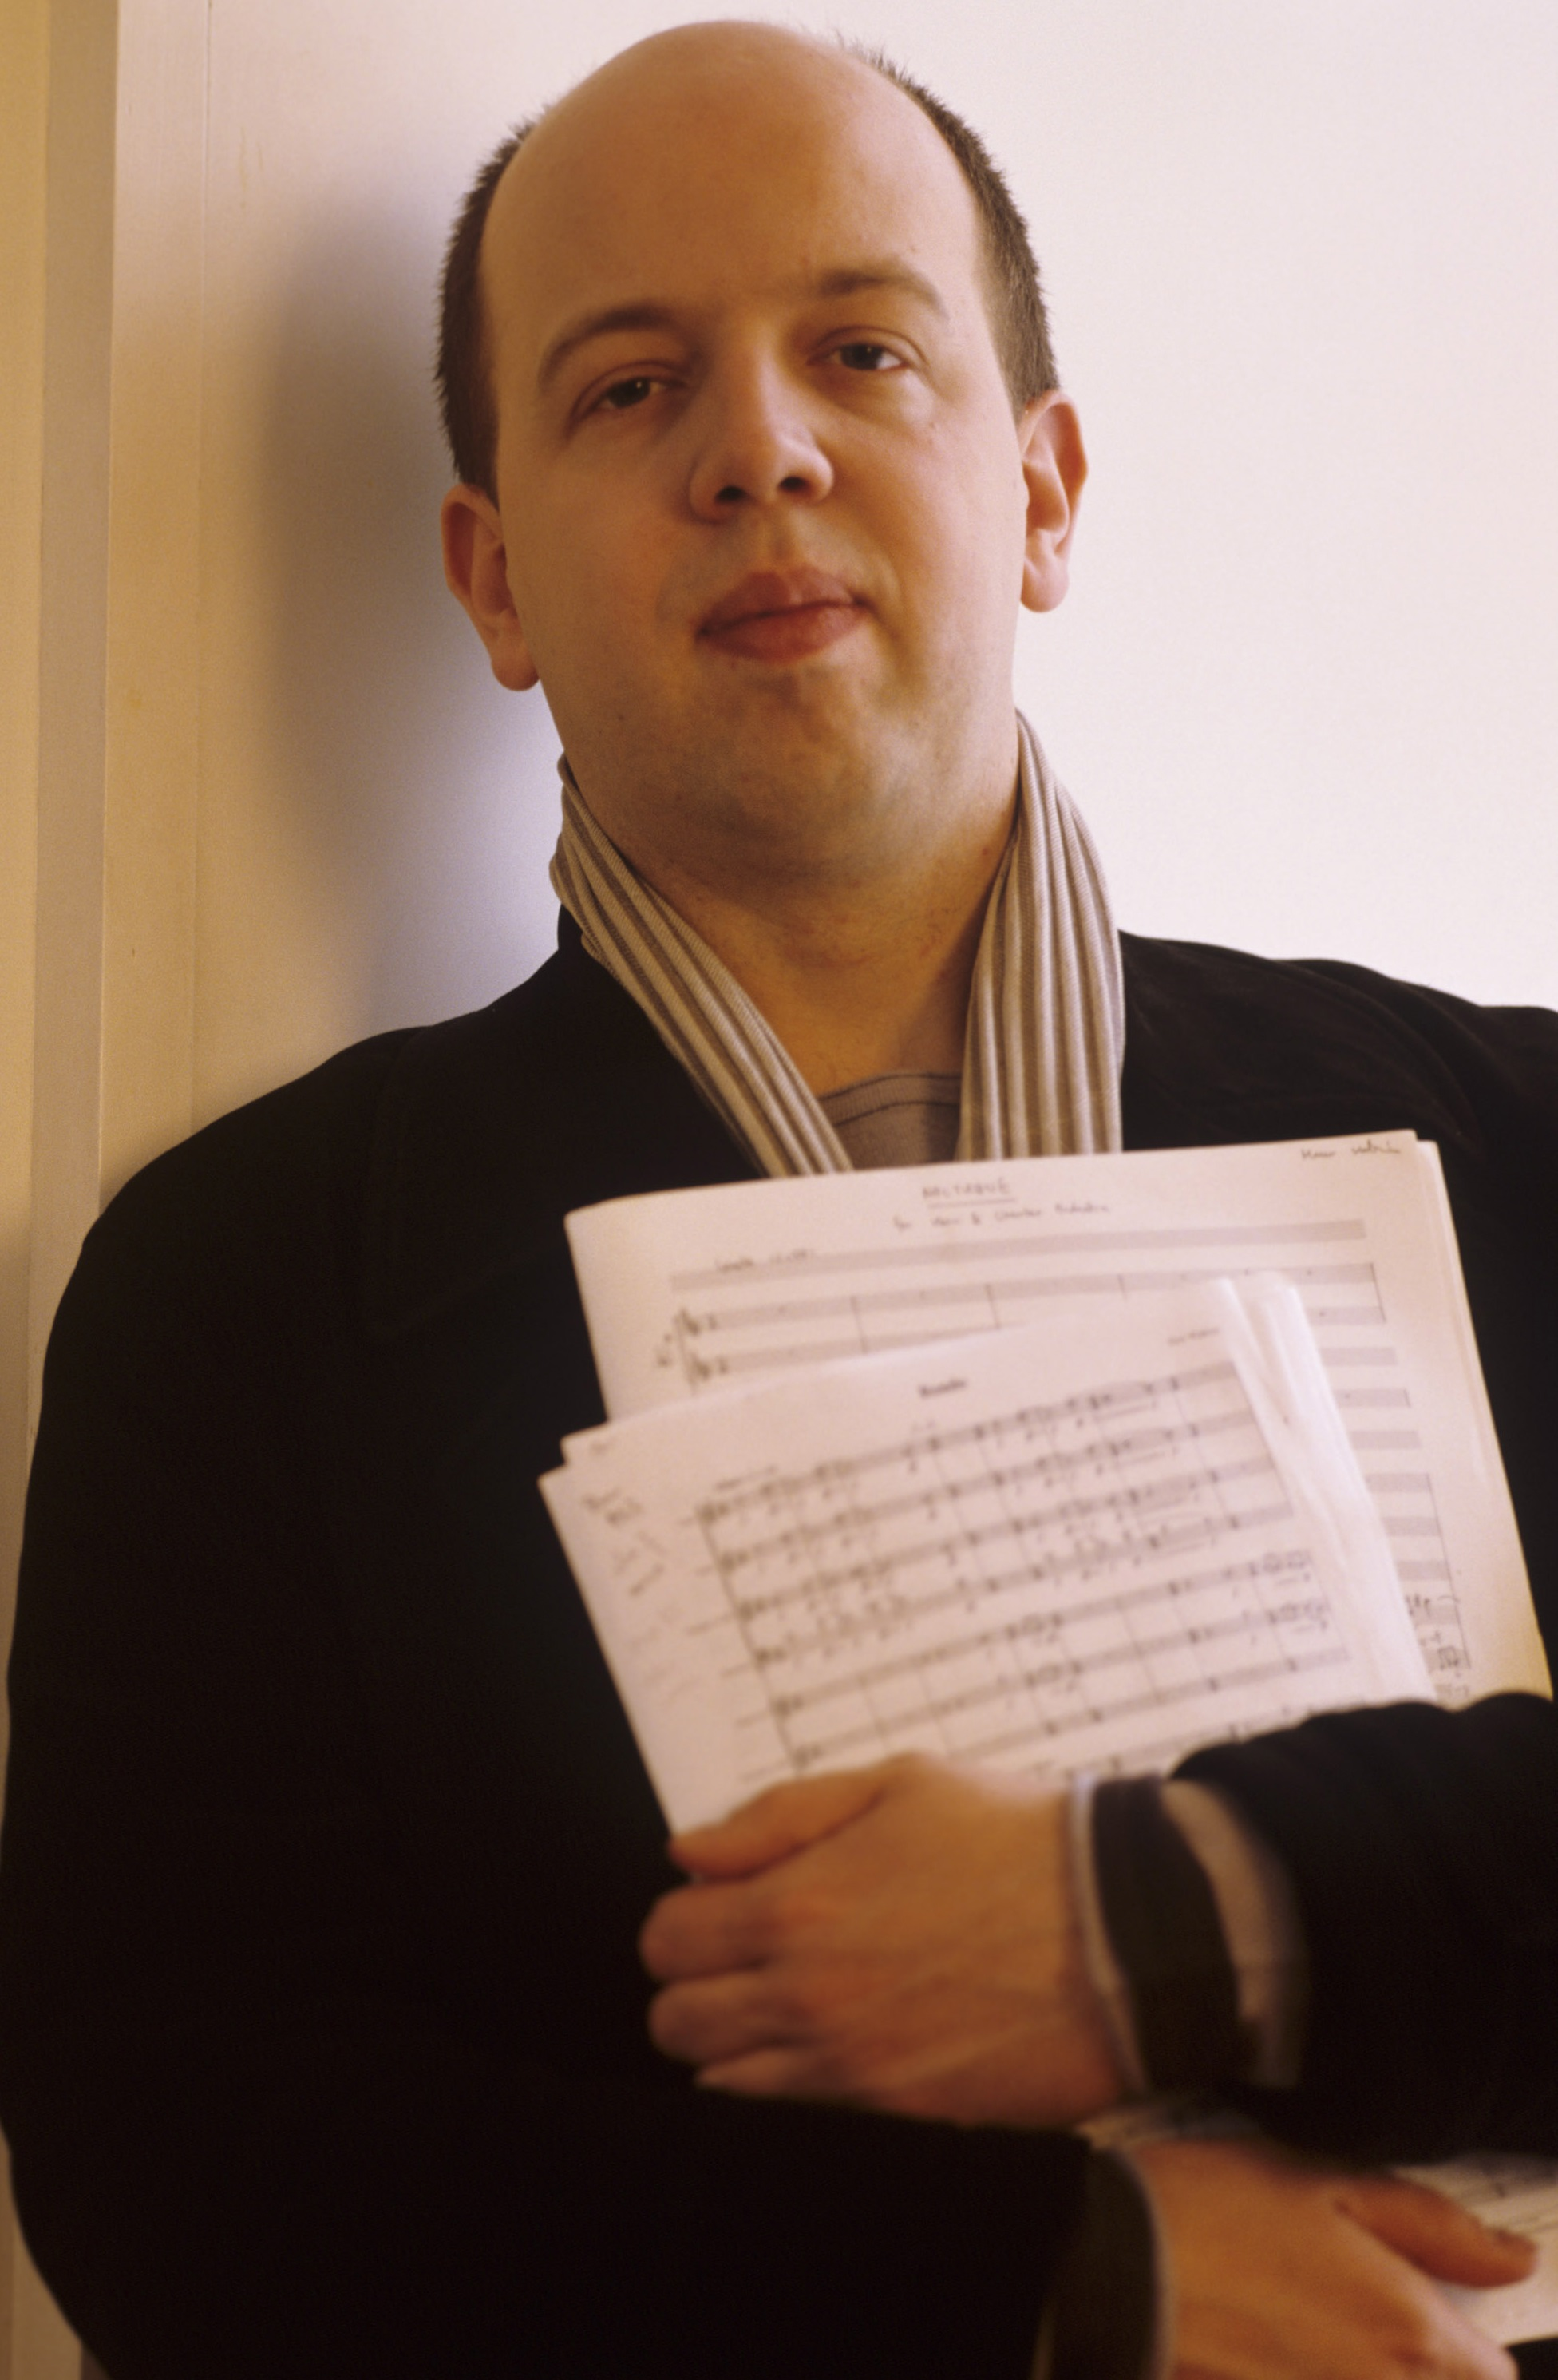 Huw Watkins Of Odysseus Piano Trio Will Play A Lunchtime Concert at St David's Hall, Cardiff on November 13